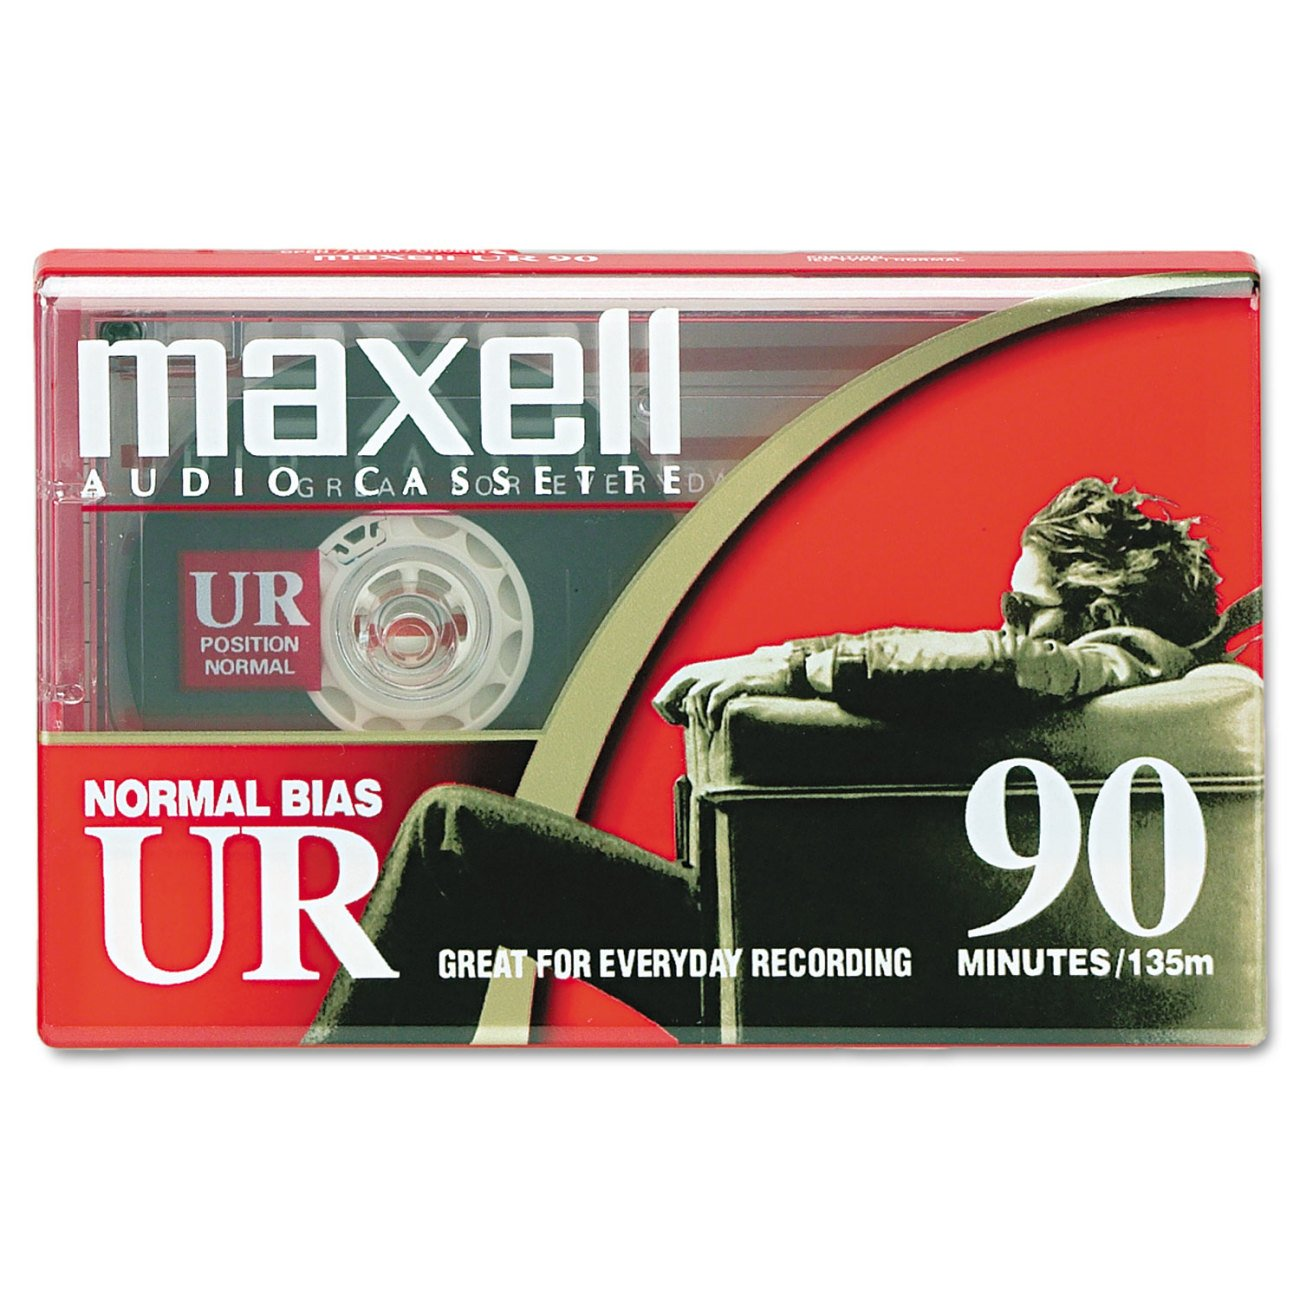 B000001OKH Maxell 108510 Normal Bias-Ur 713Ab6OYOrL